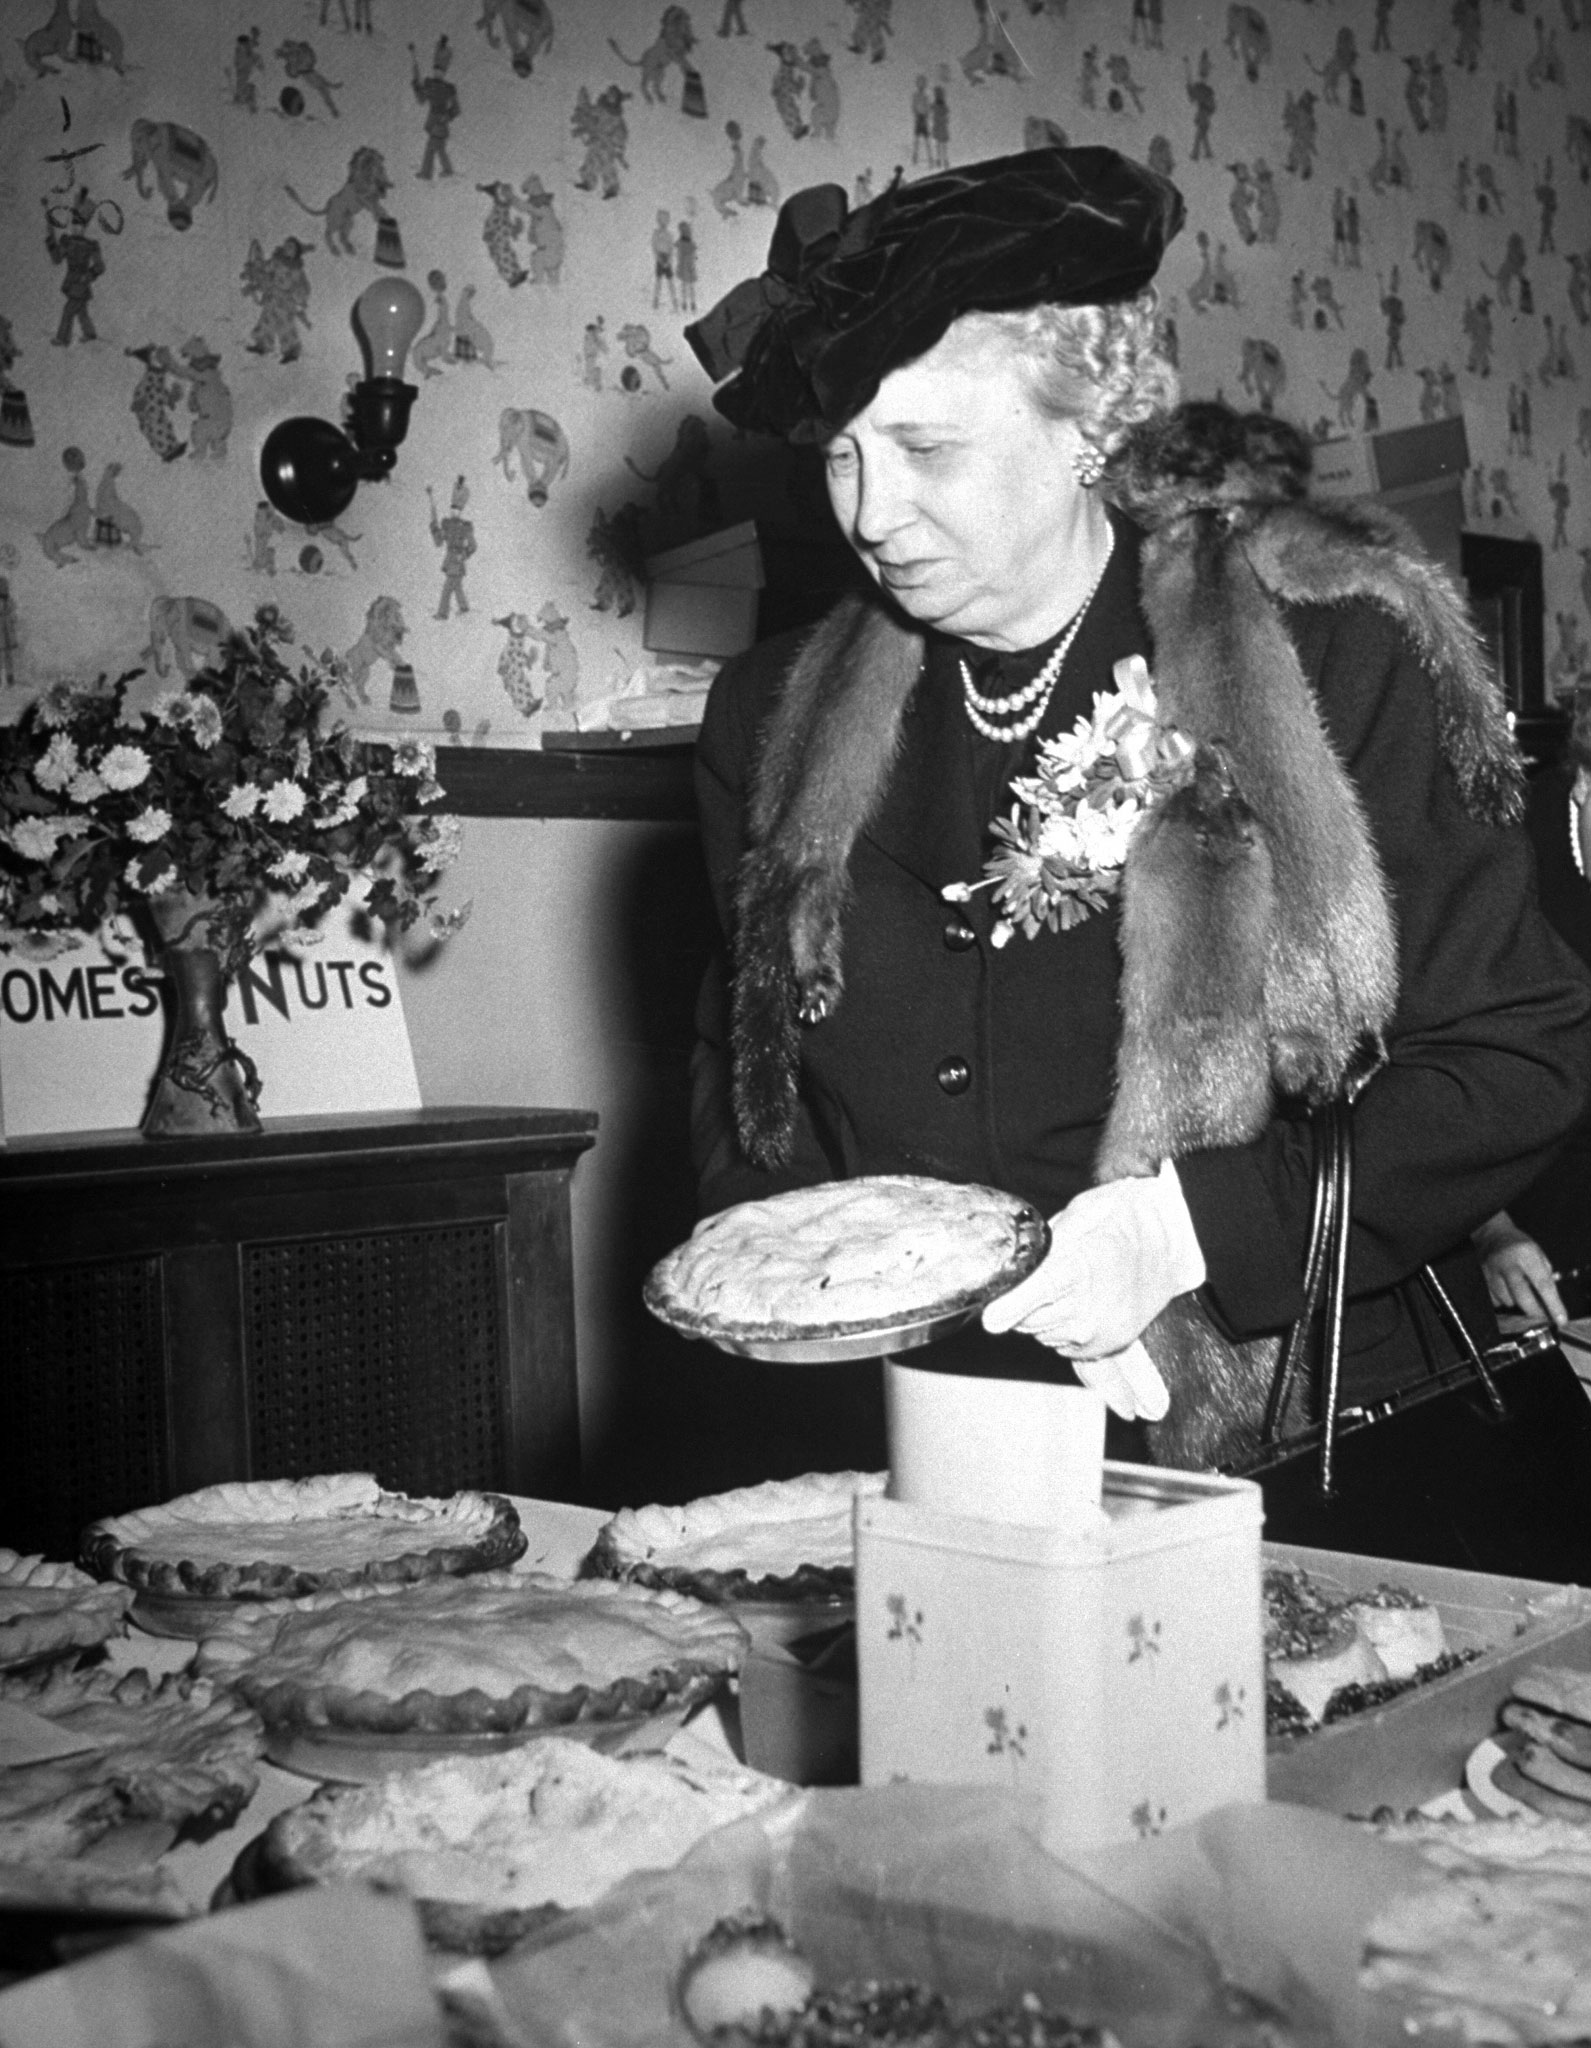 Bess Truman looking over a table full of baked goods, 1949.